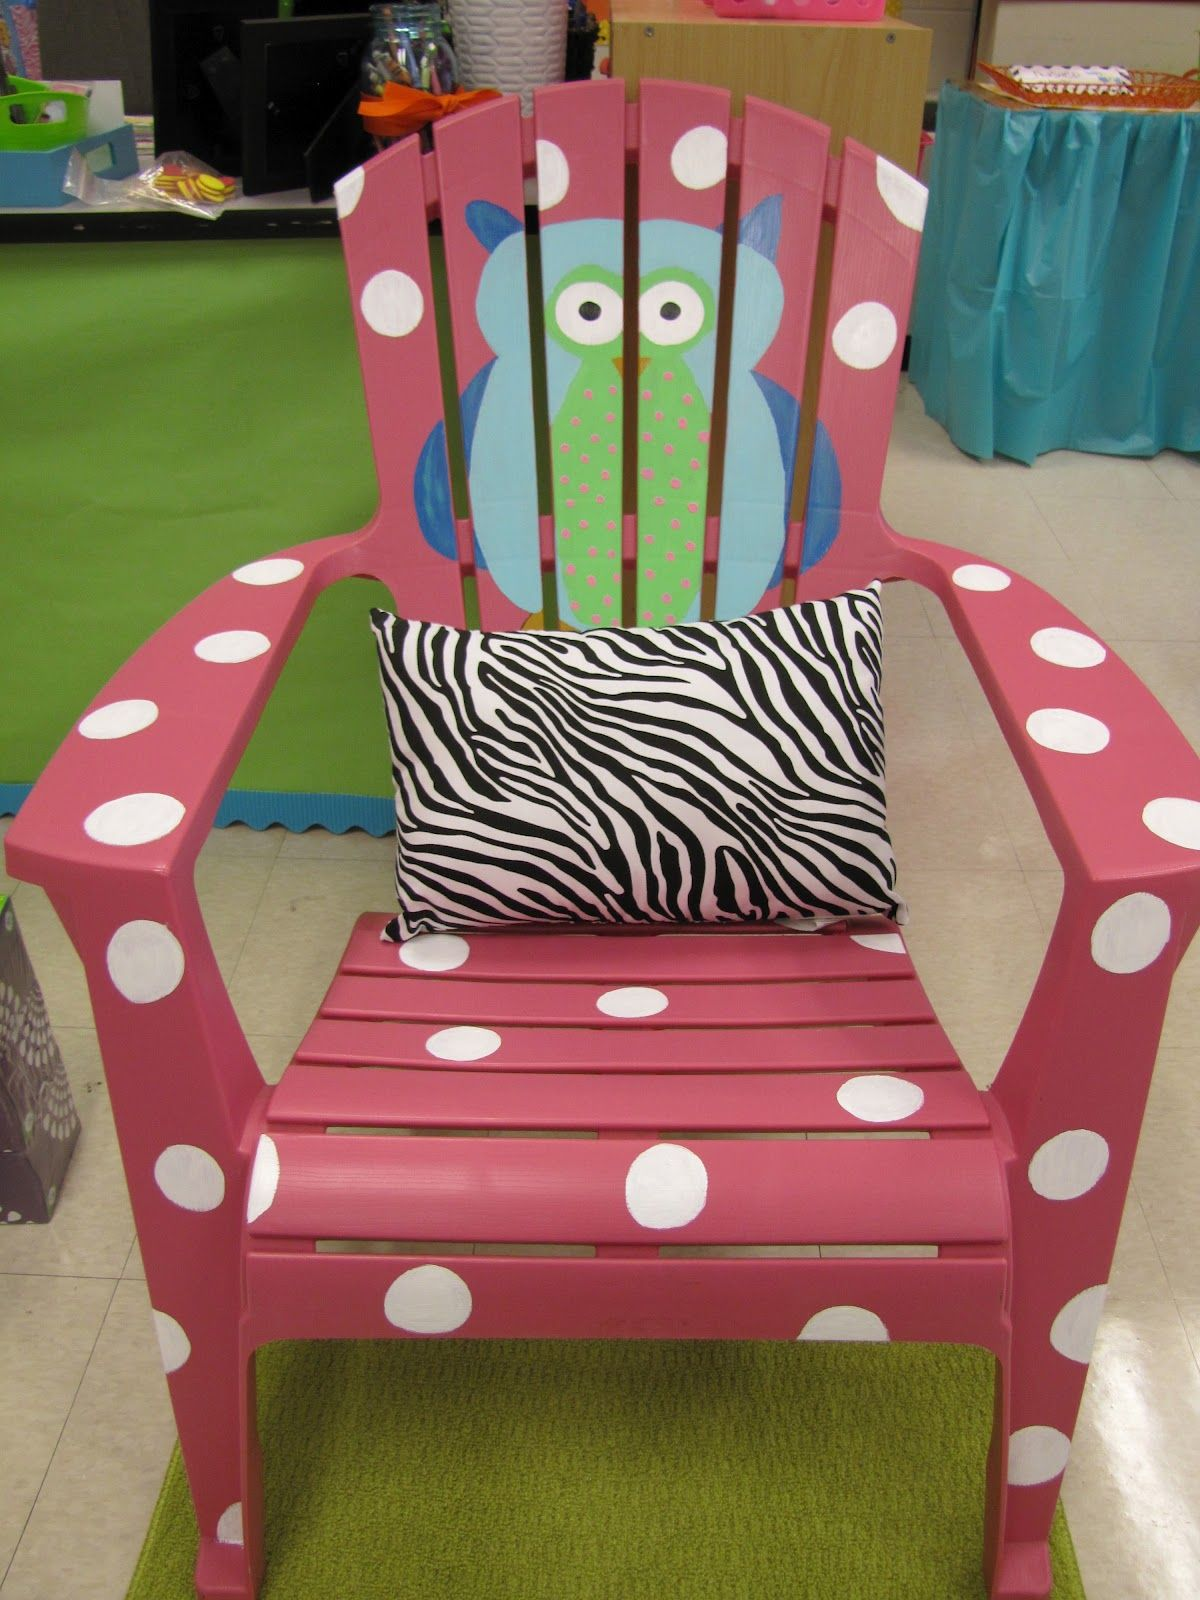 Owl Chair For Kids Leather Swivel Recliner And Ottoman Love This Decorate A Cheap Lawn I Think